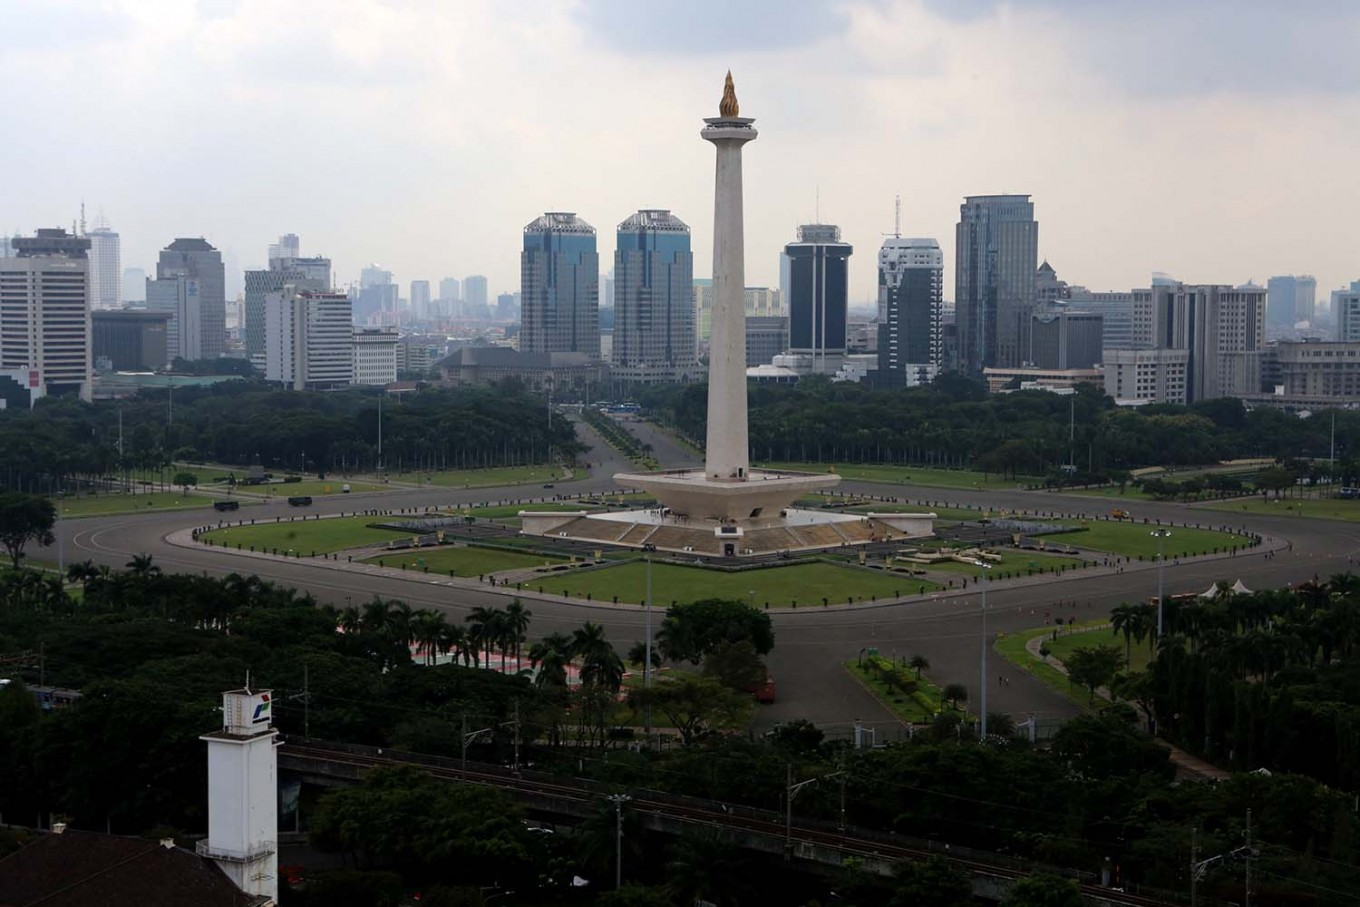 Indonesian future capital proposal is now under proper study